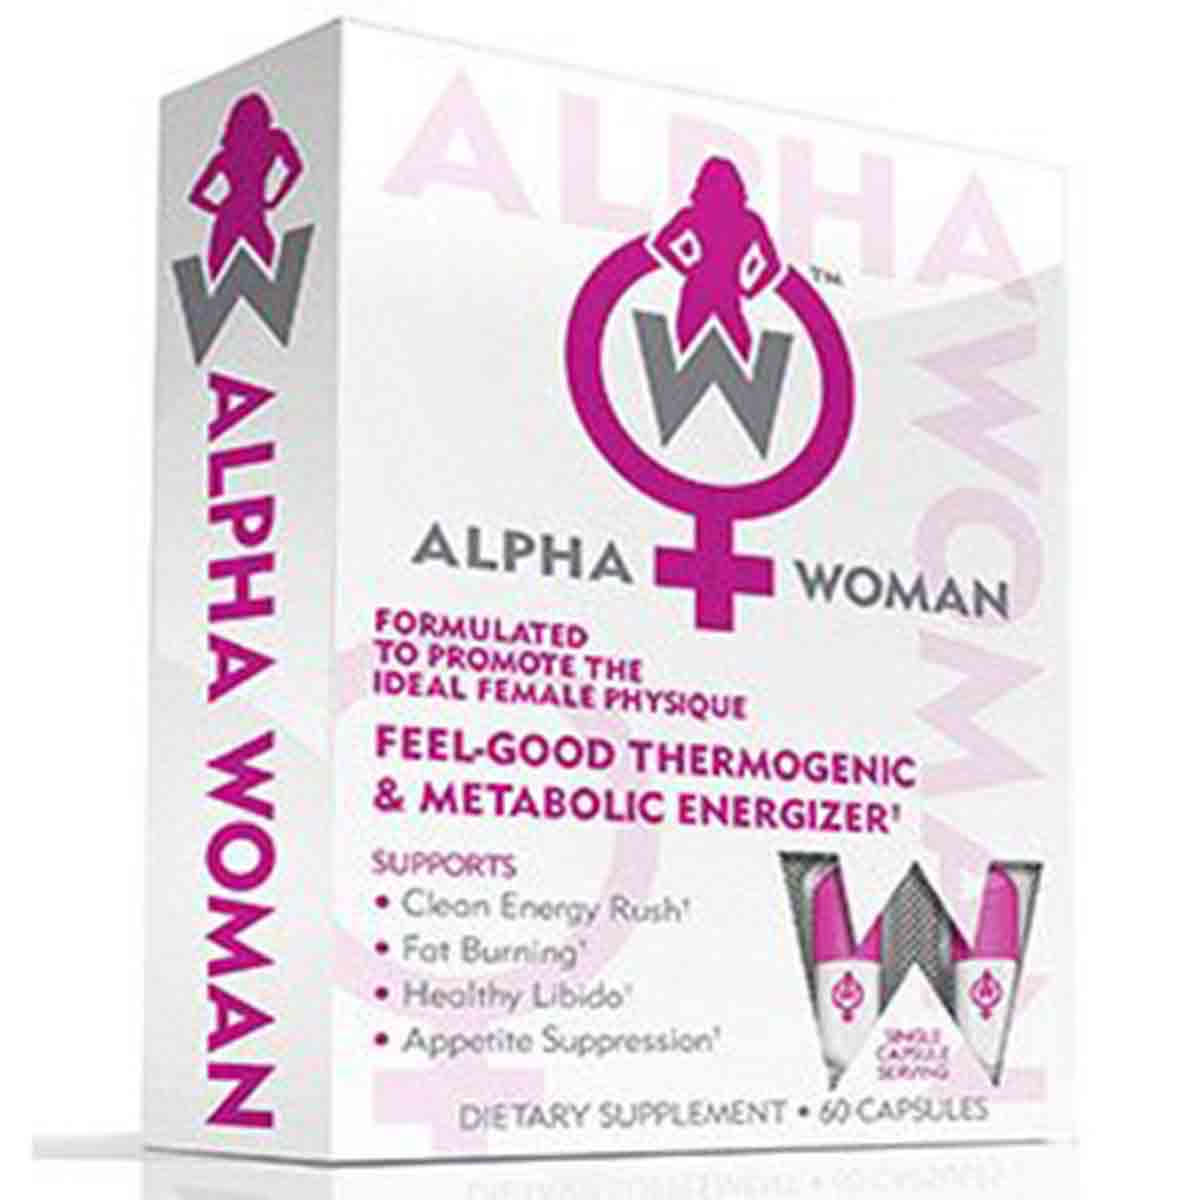 Alpha Woman Feel-Good Thermogenic